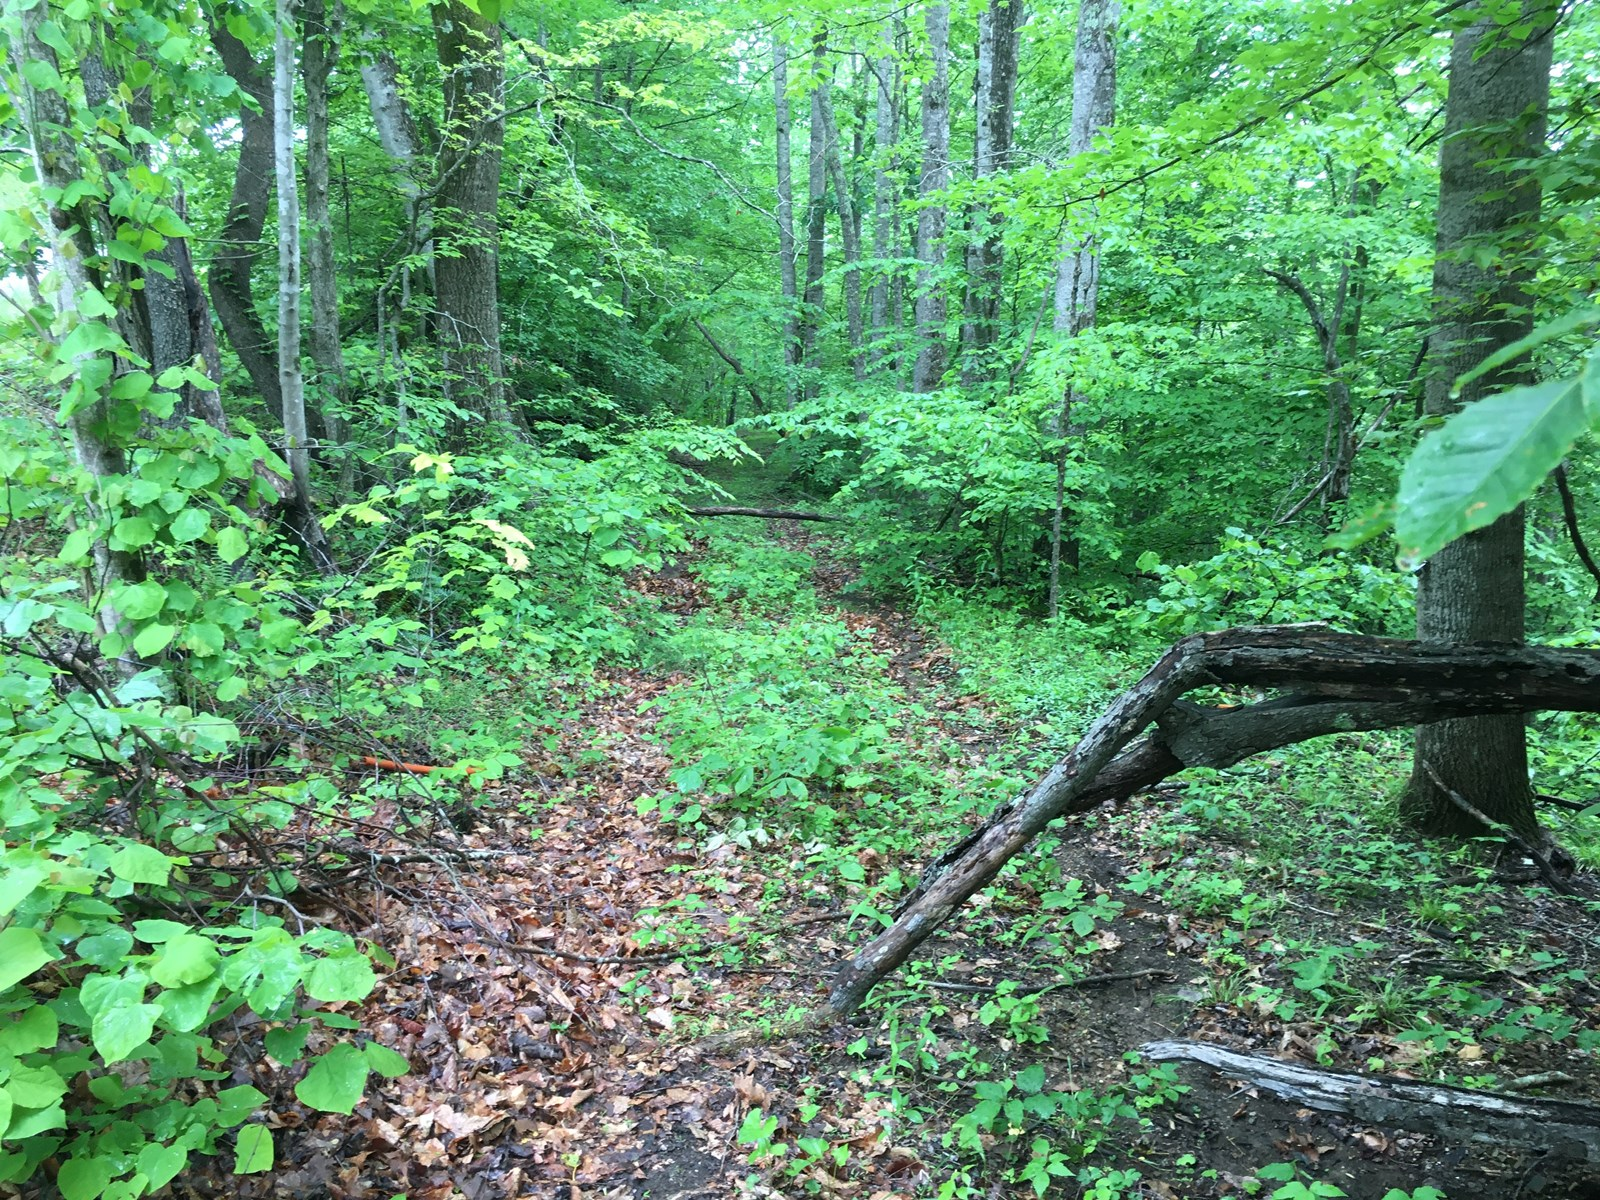 Land for Sale in Franklin County VA